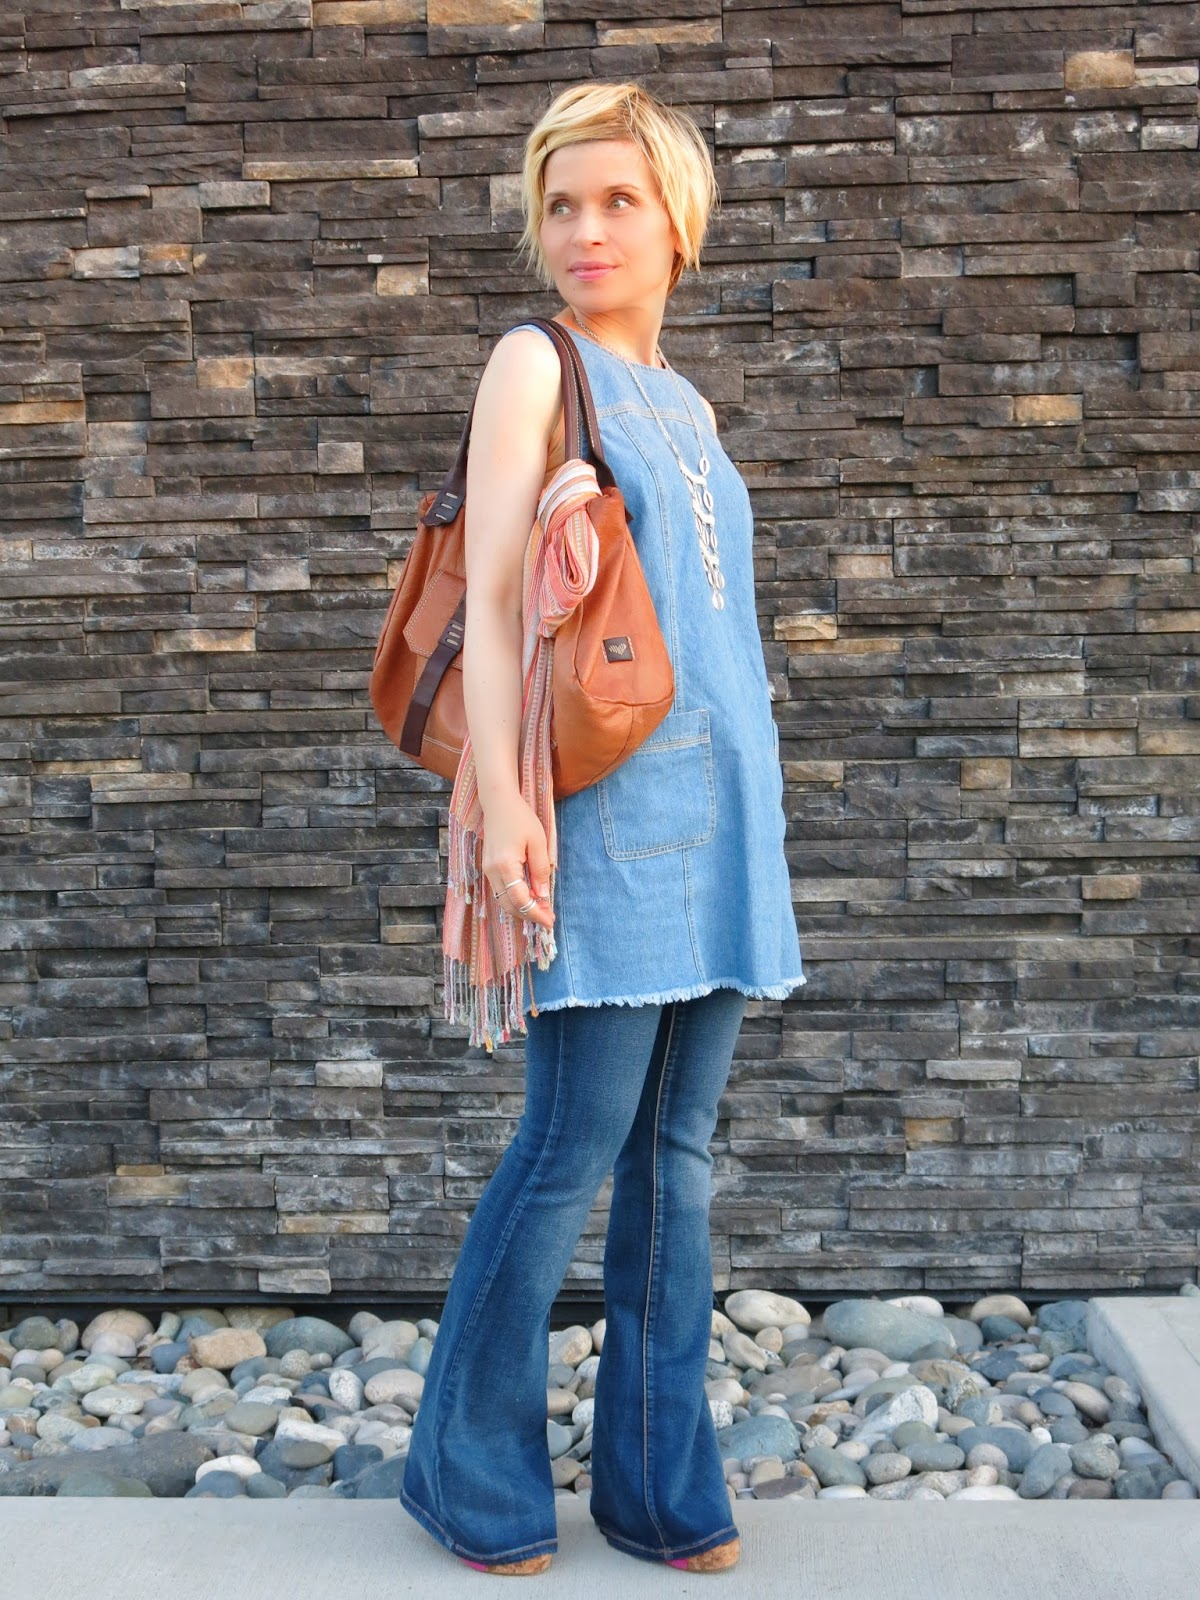 styling a denim shift dress with flare jeans